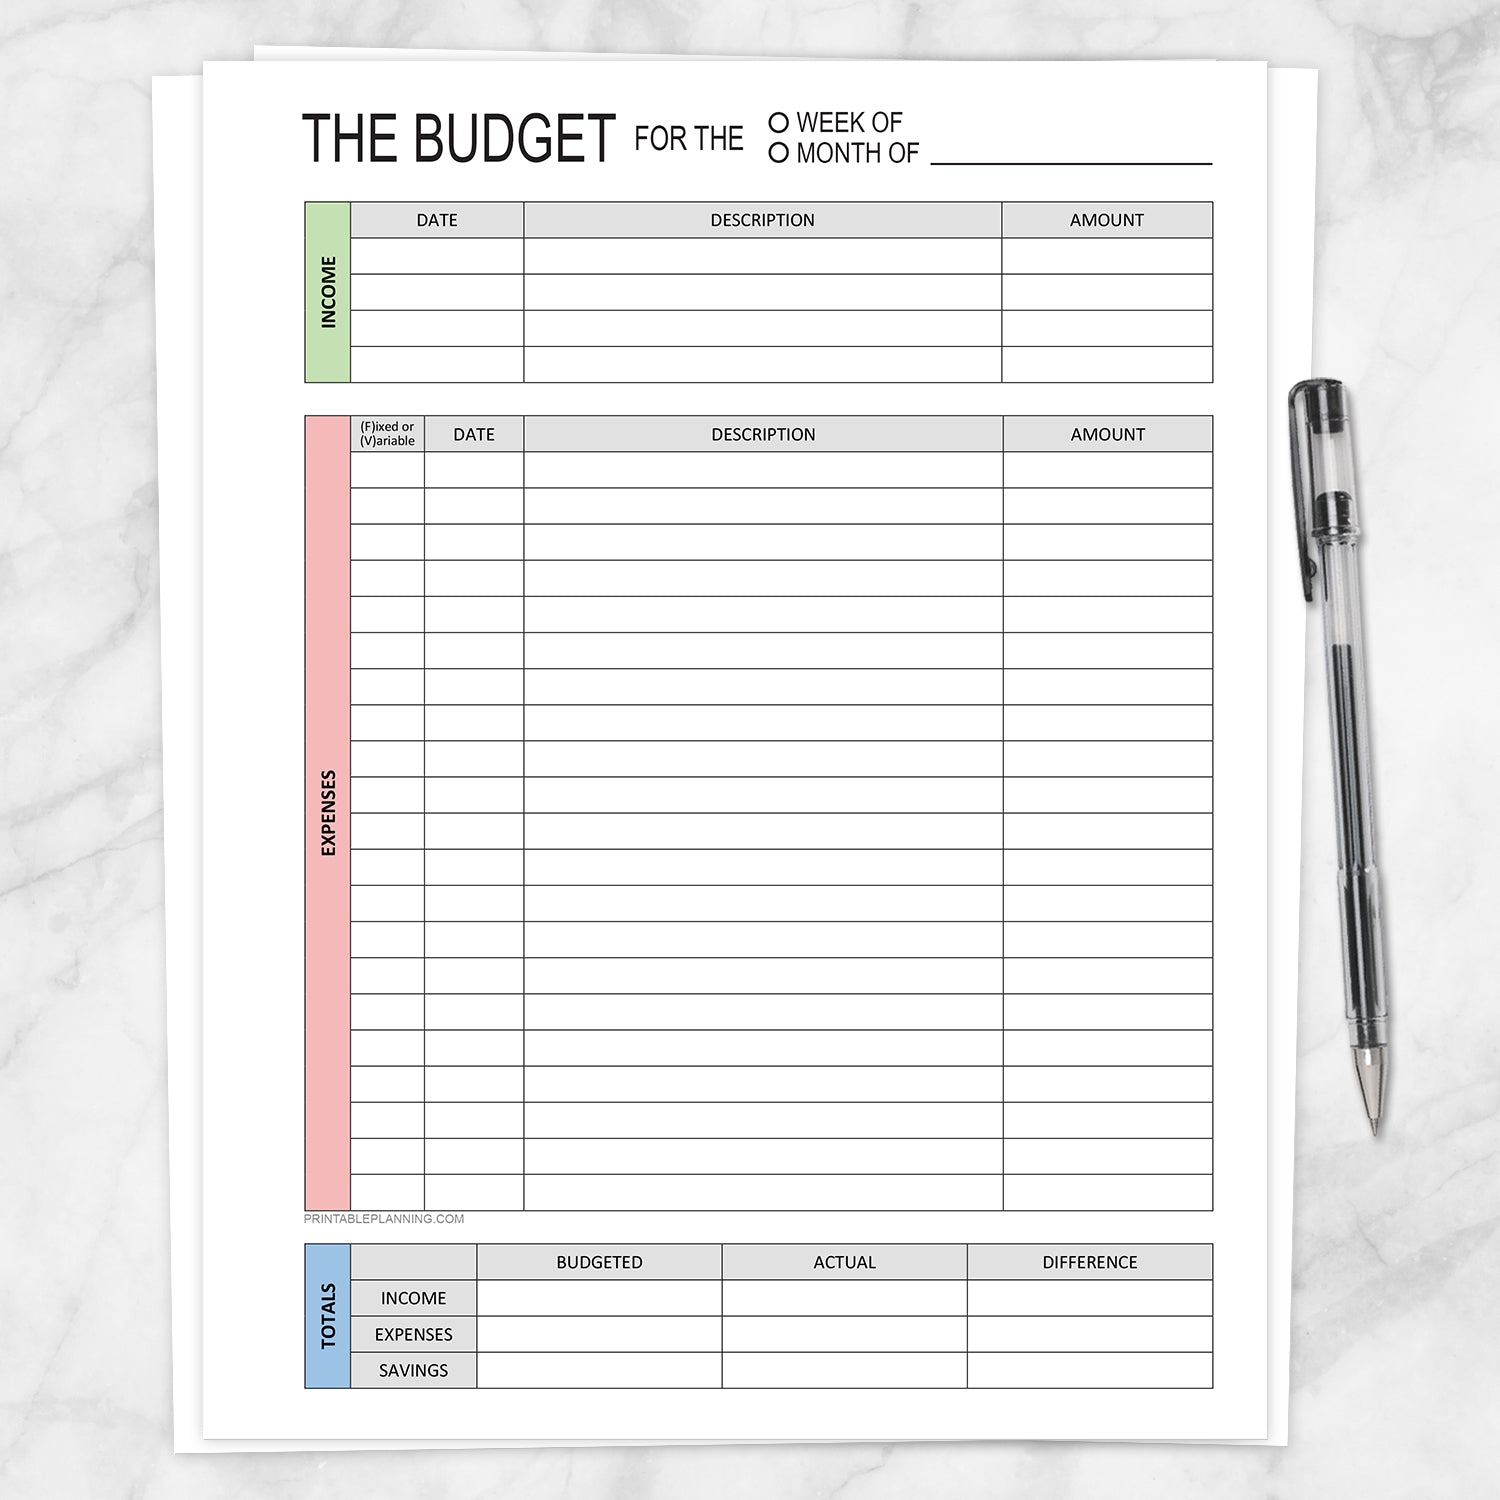 Printable Budget Worksheet - Weekly or Monthly, Green Red Blue, at Printable Planning